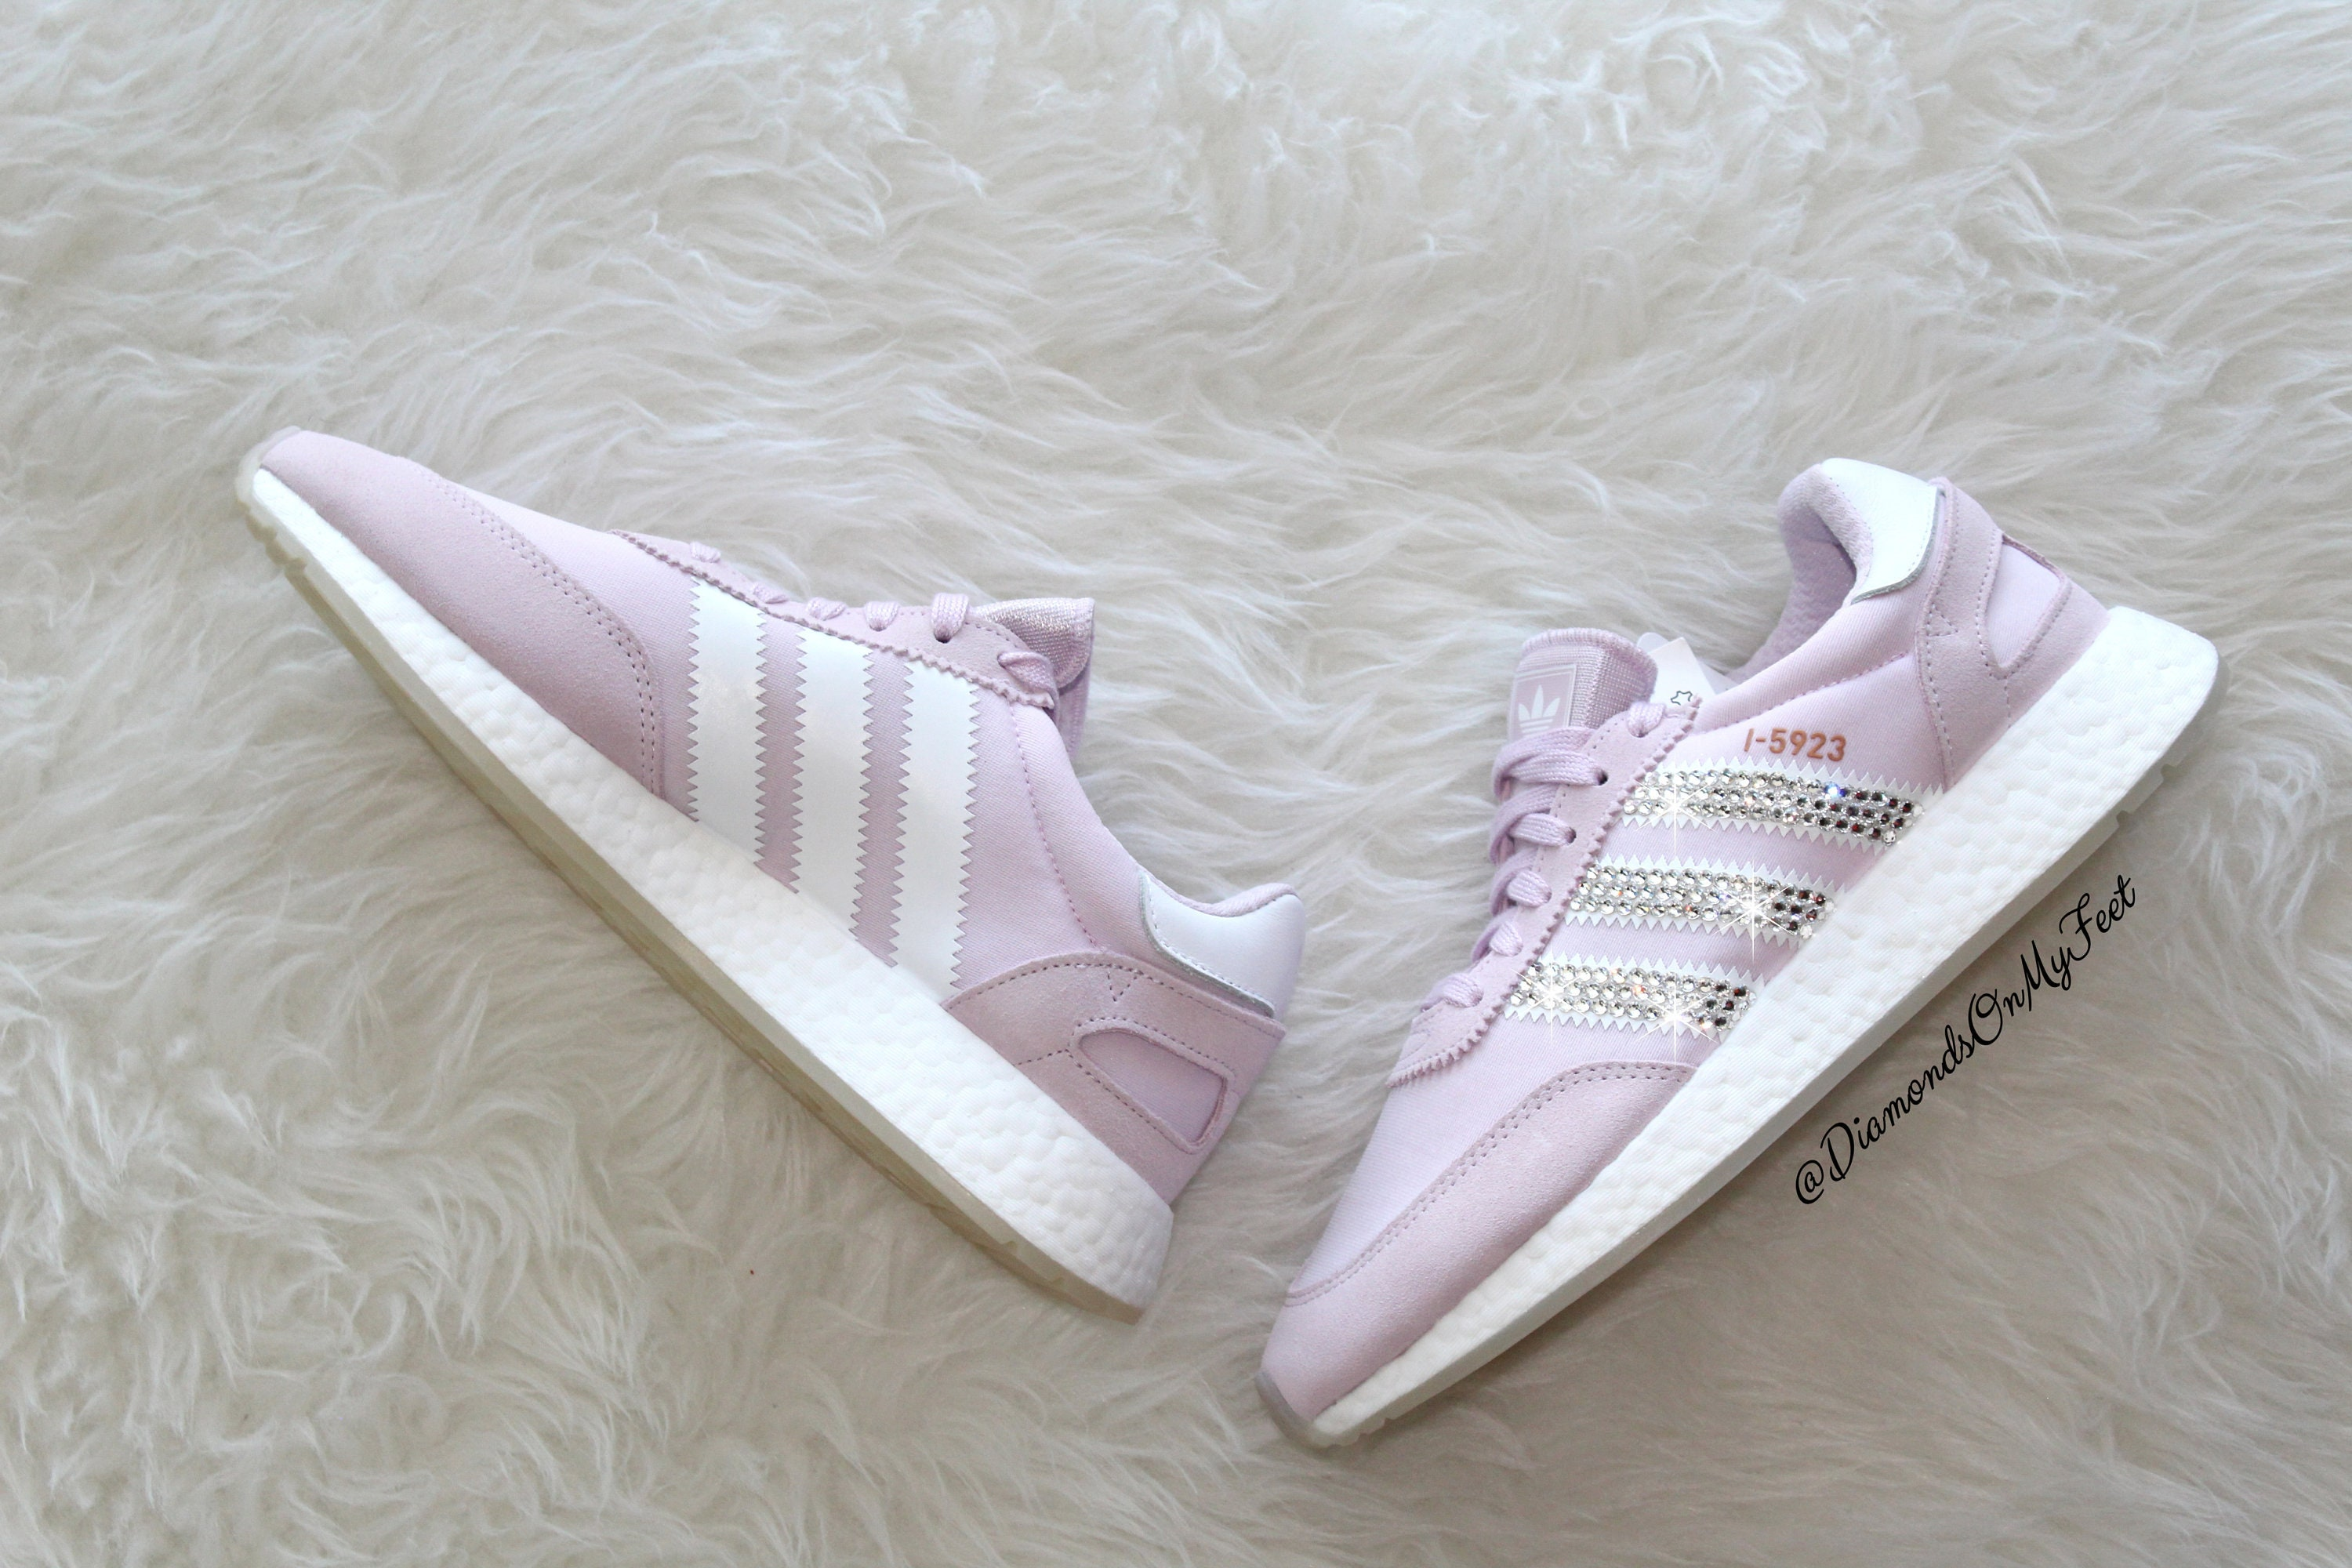 buy popular 86279 1905b Adidas Iniki I-5923 Sneakers rosa luce Blinged Out Swarovski   Etsy